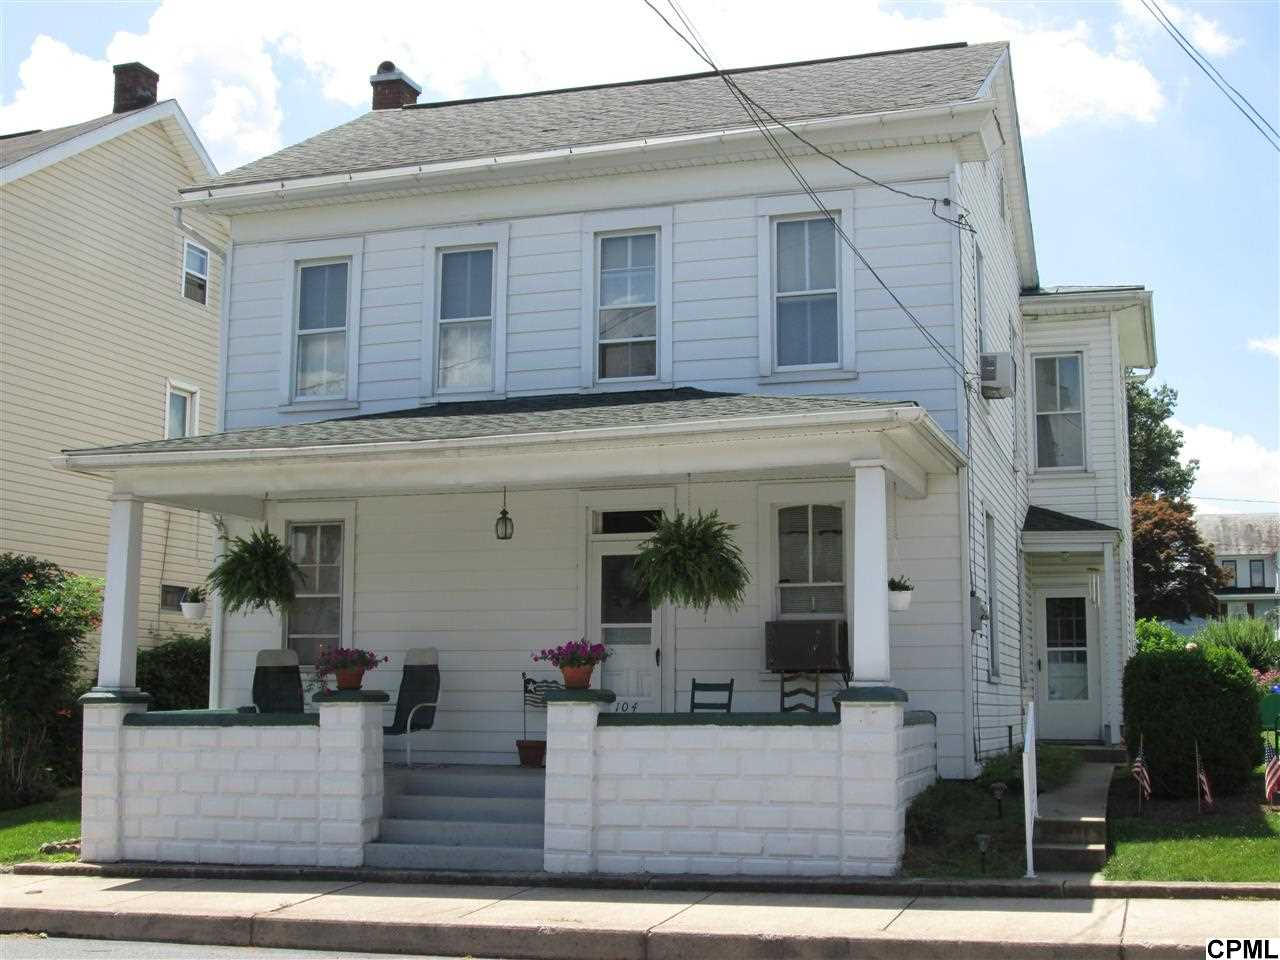 104 E Main St, Richland, PA 17087